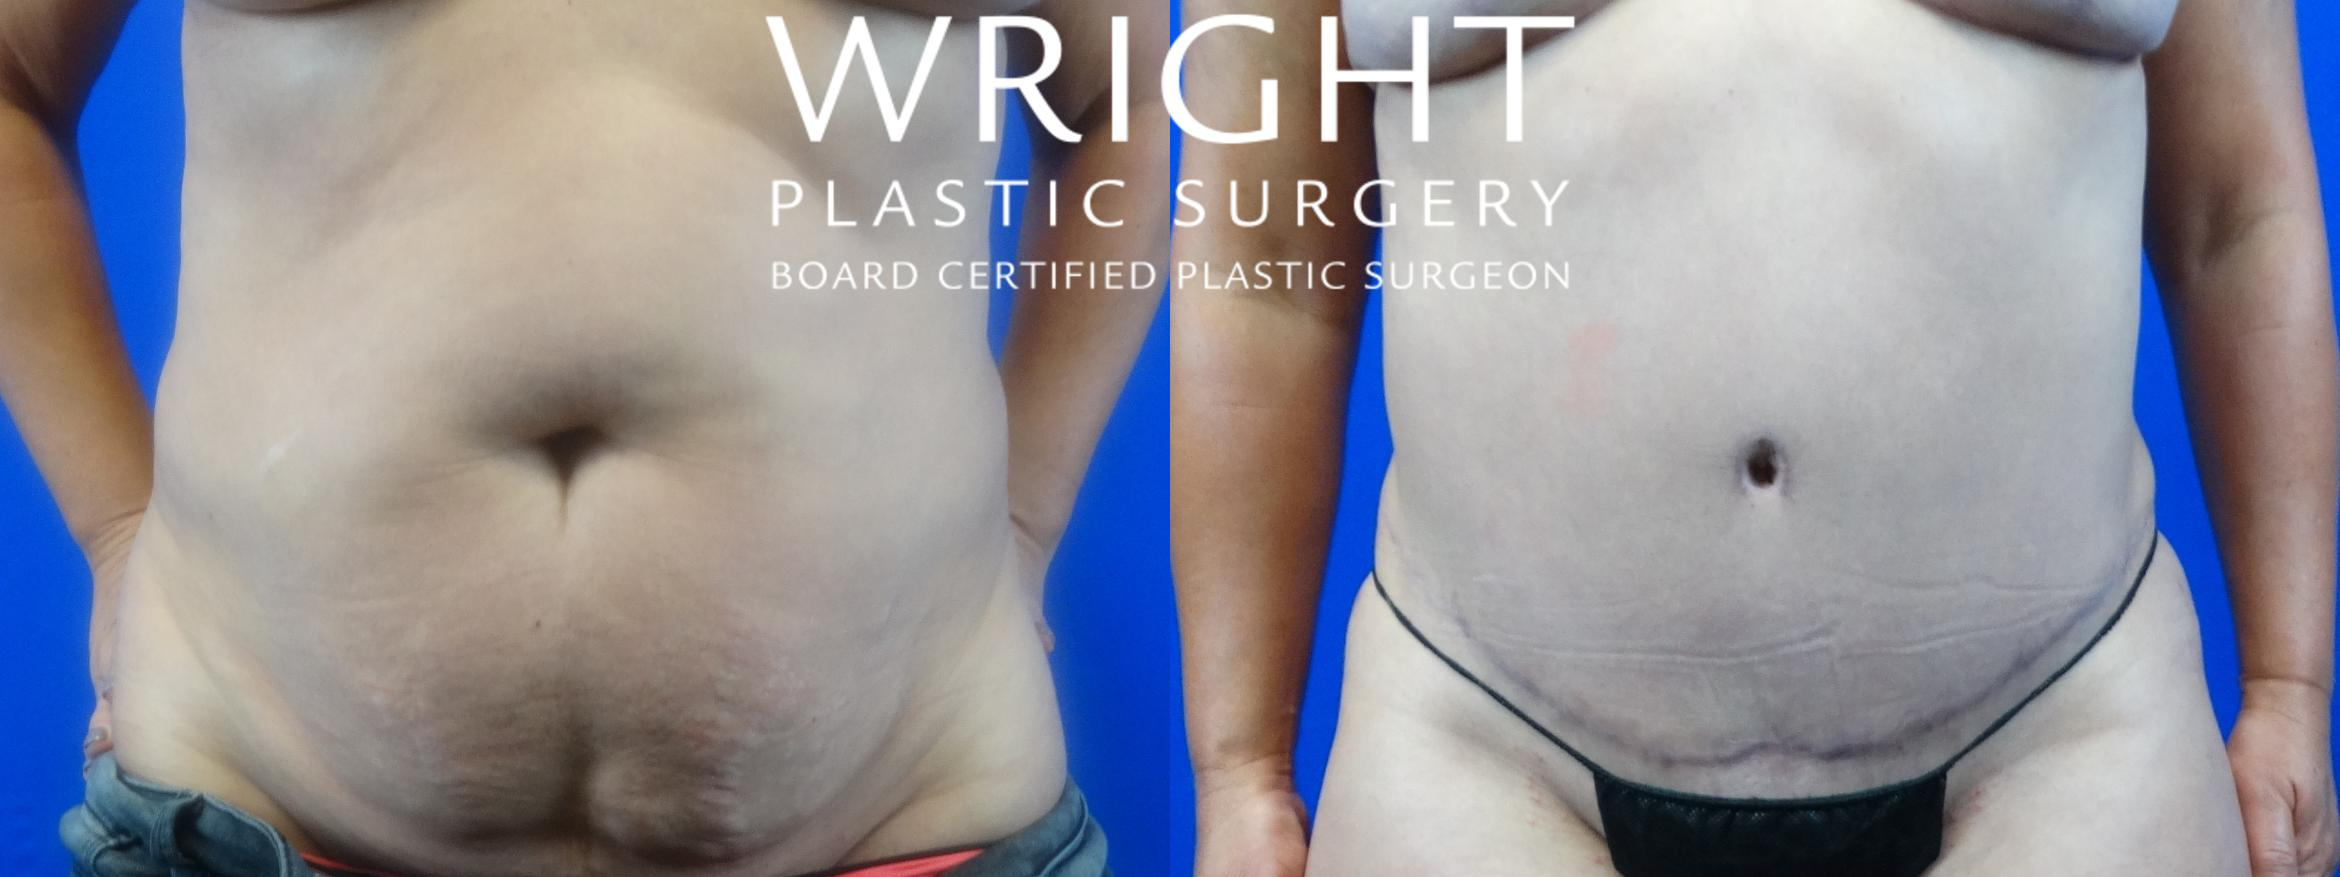 Tummy Tuck Case 32 Before & After Front | Little Rock, Arkansas | Dr. Wright Plastic Surgery